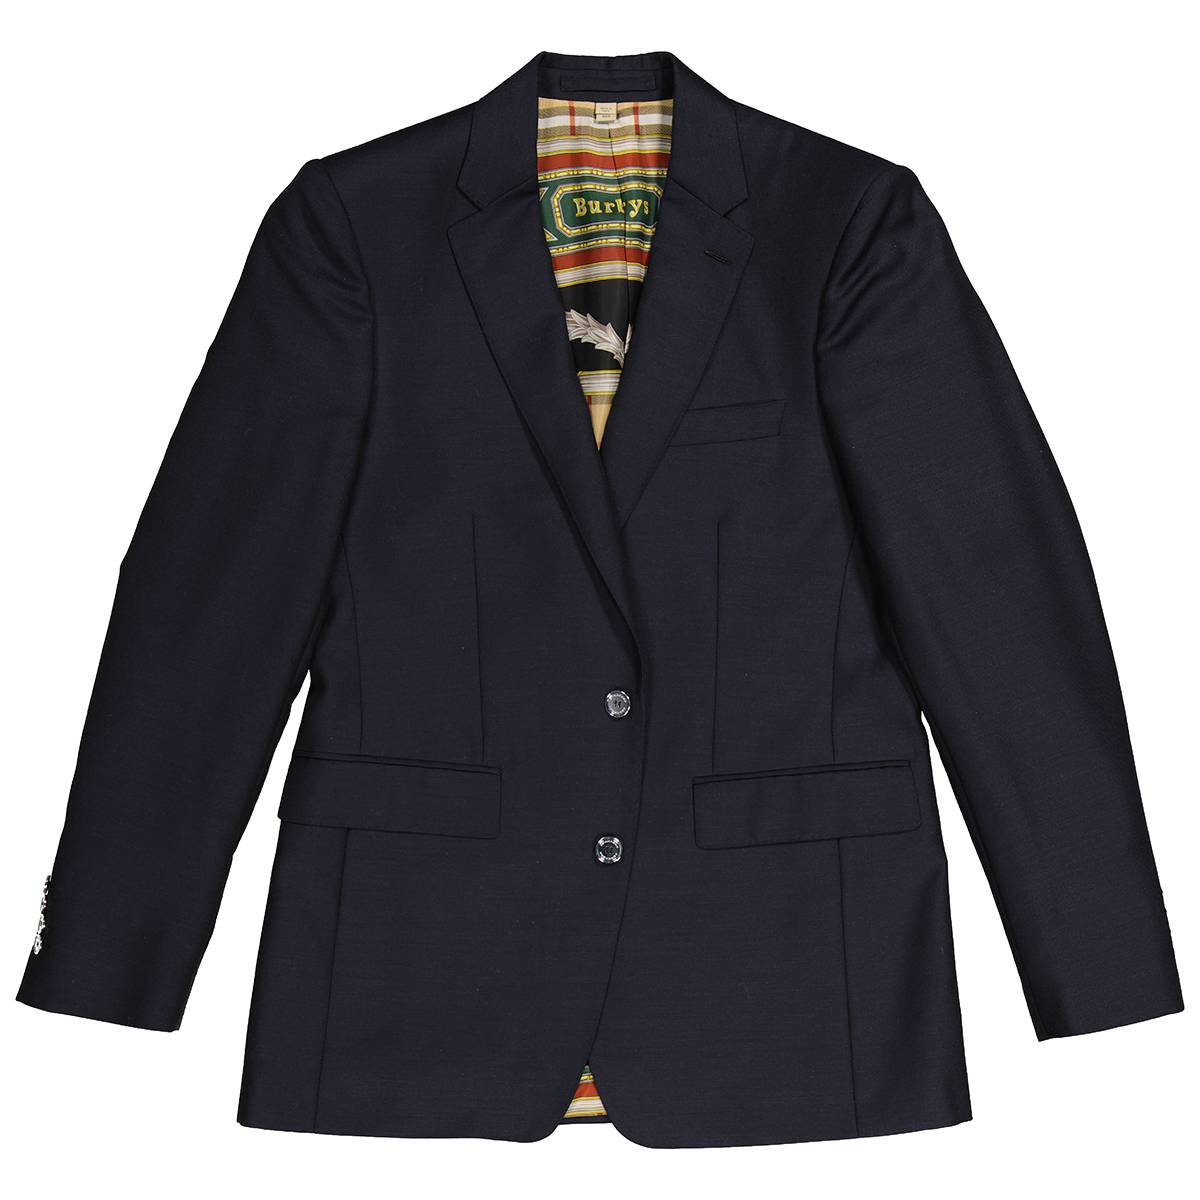 Burberry Mens Slim Fit Wool Mohair Tailored Jacket In Black